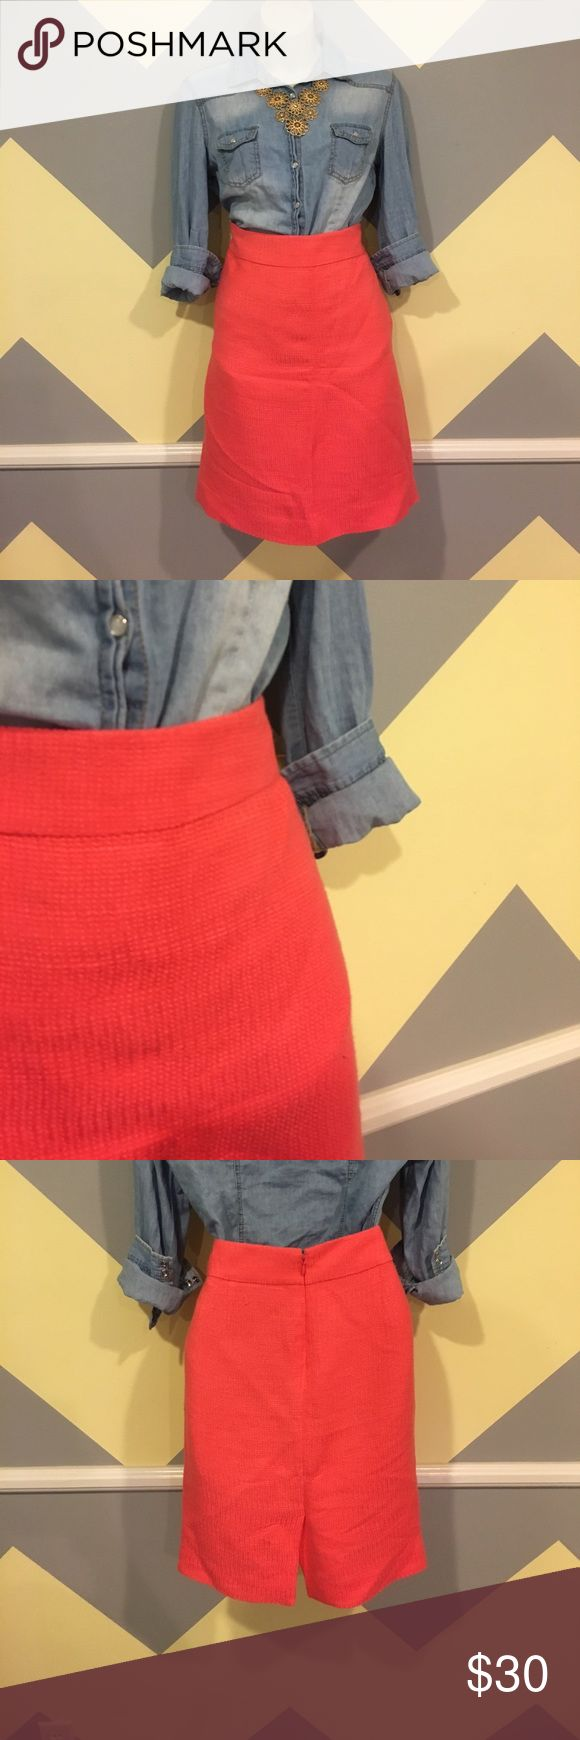 Coral Pencil Skirt - J. Crew Smoke Free. Offers always welcome. Questions answered within 24 hours. 💕 J. Crew Skirts Pencil